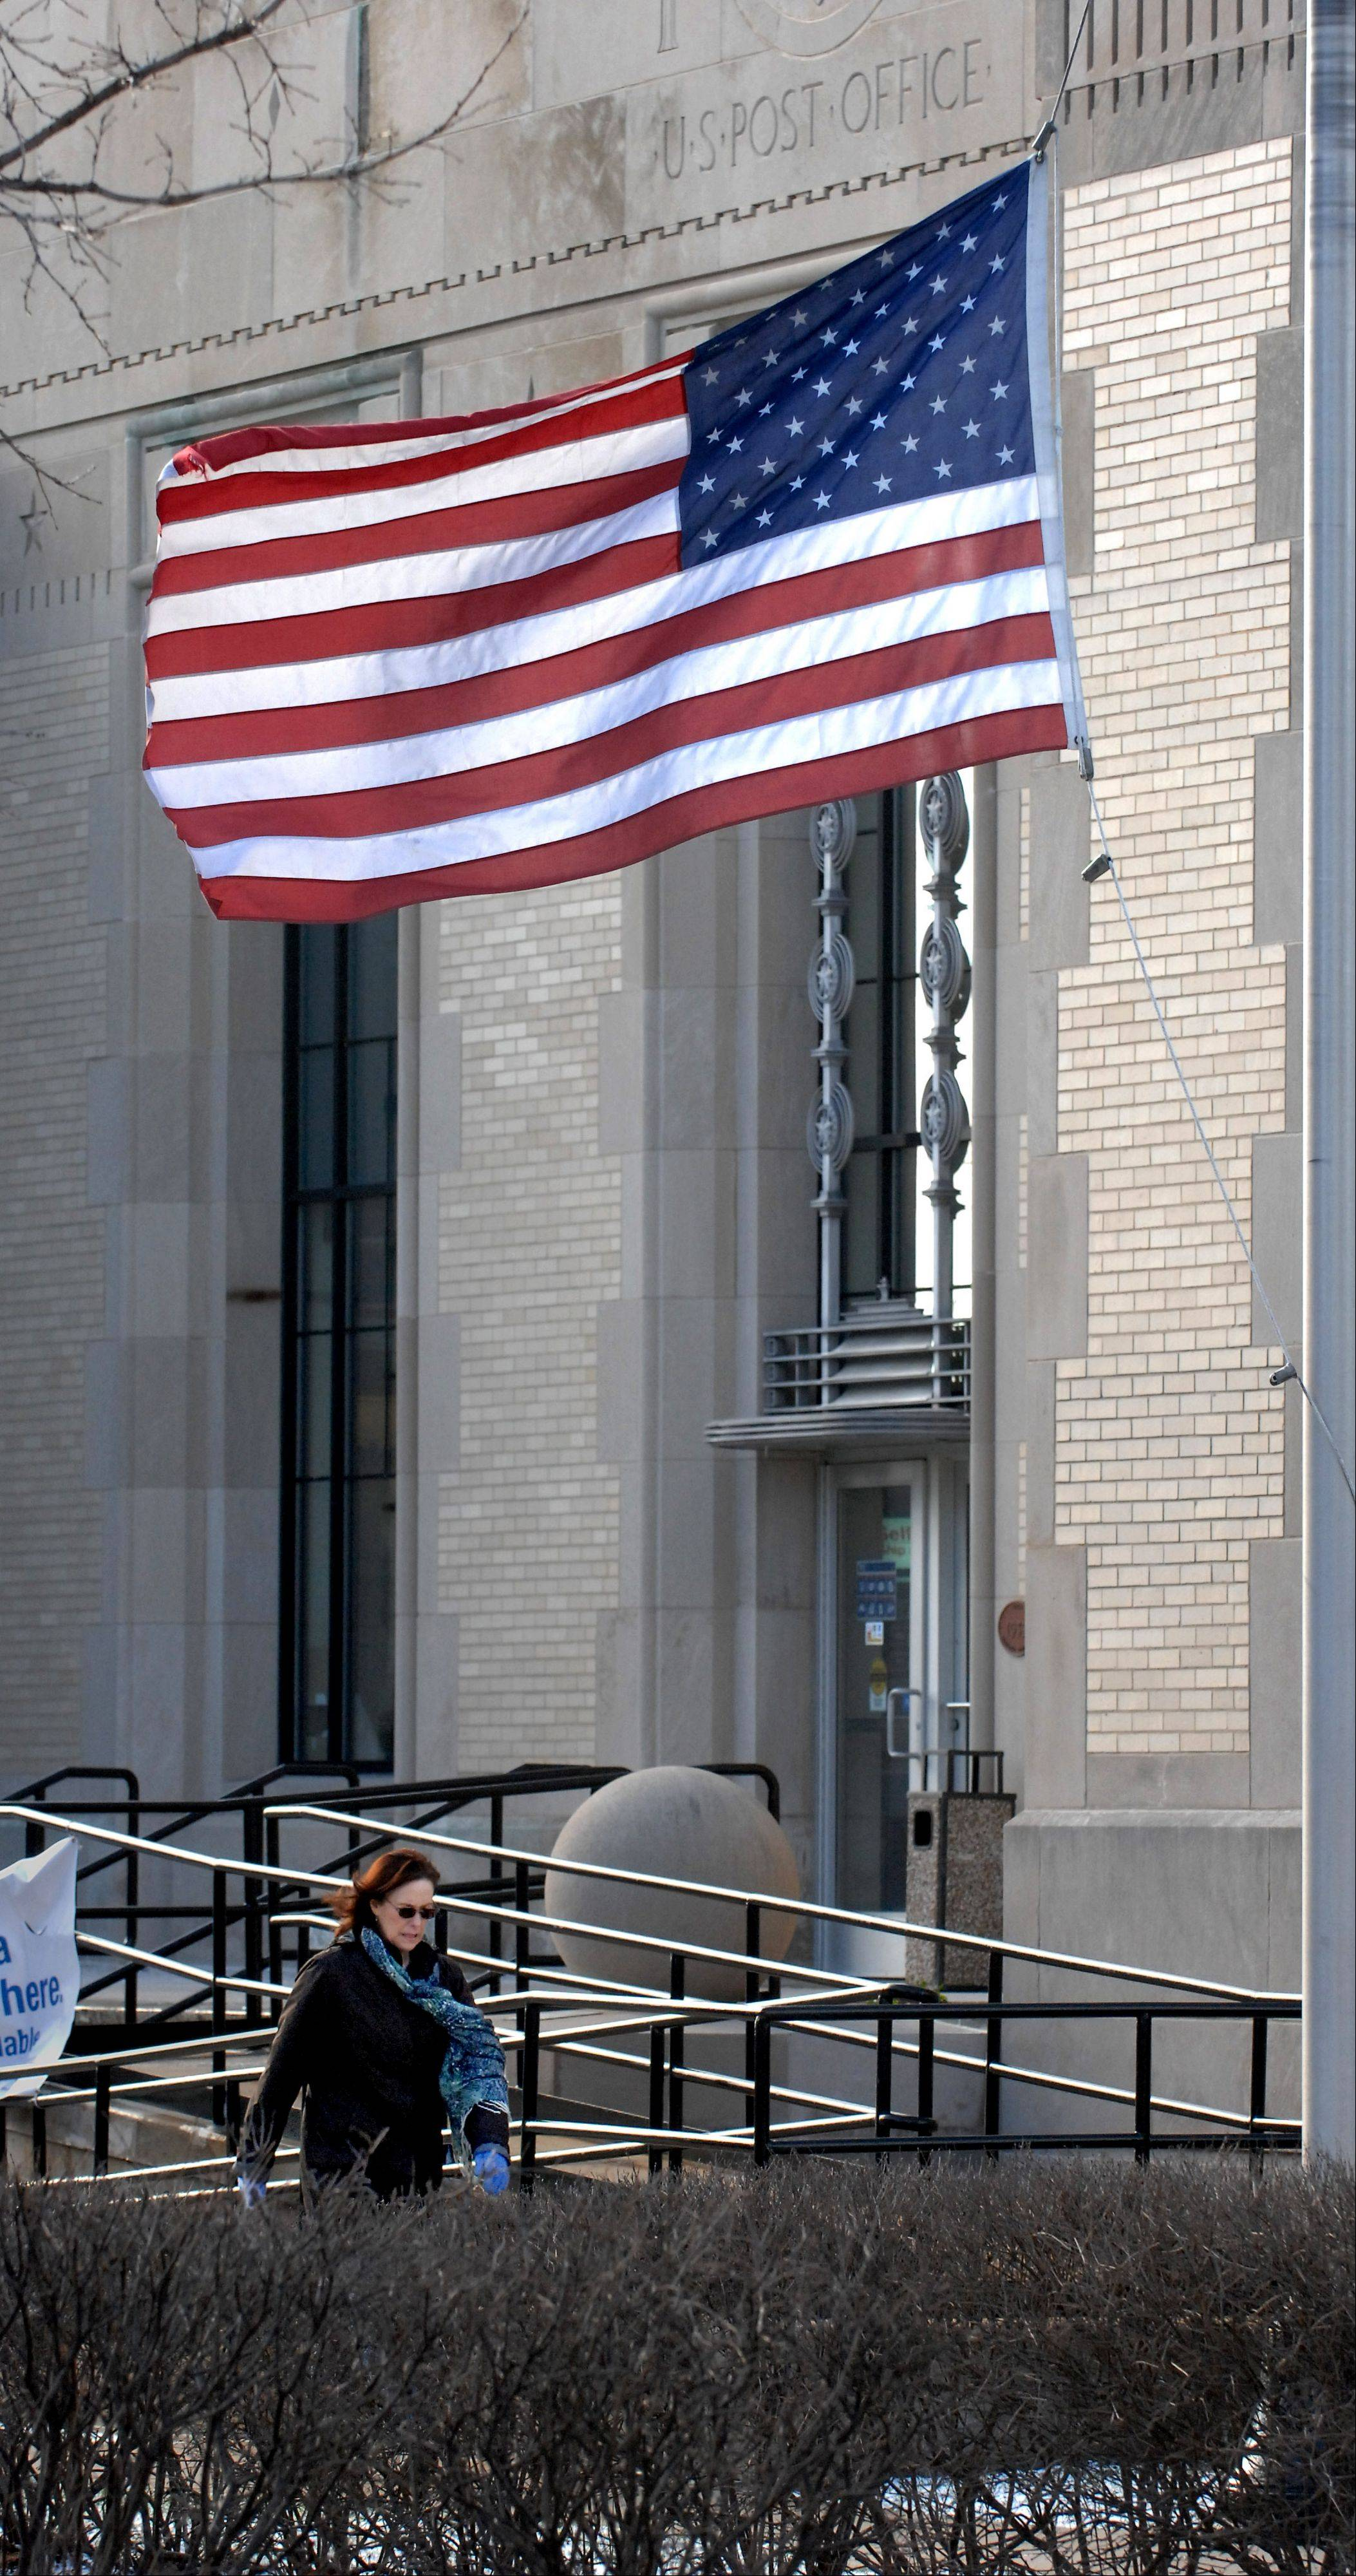 Winds were whipping flags and people around Friday morning, including those conducting last minute business at the Wheaton post office.